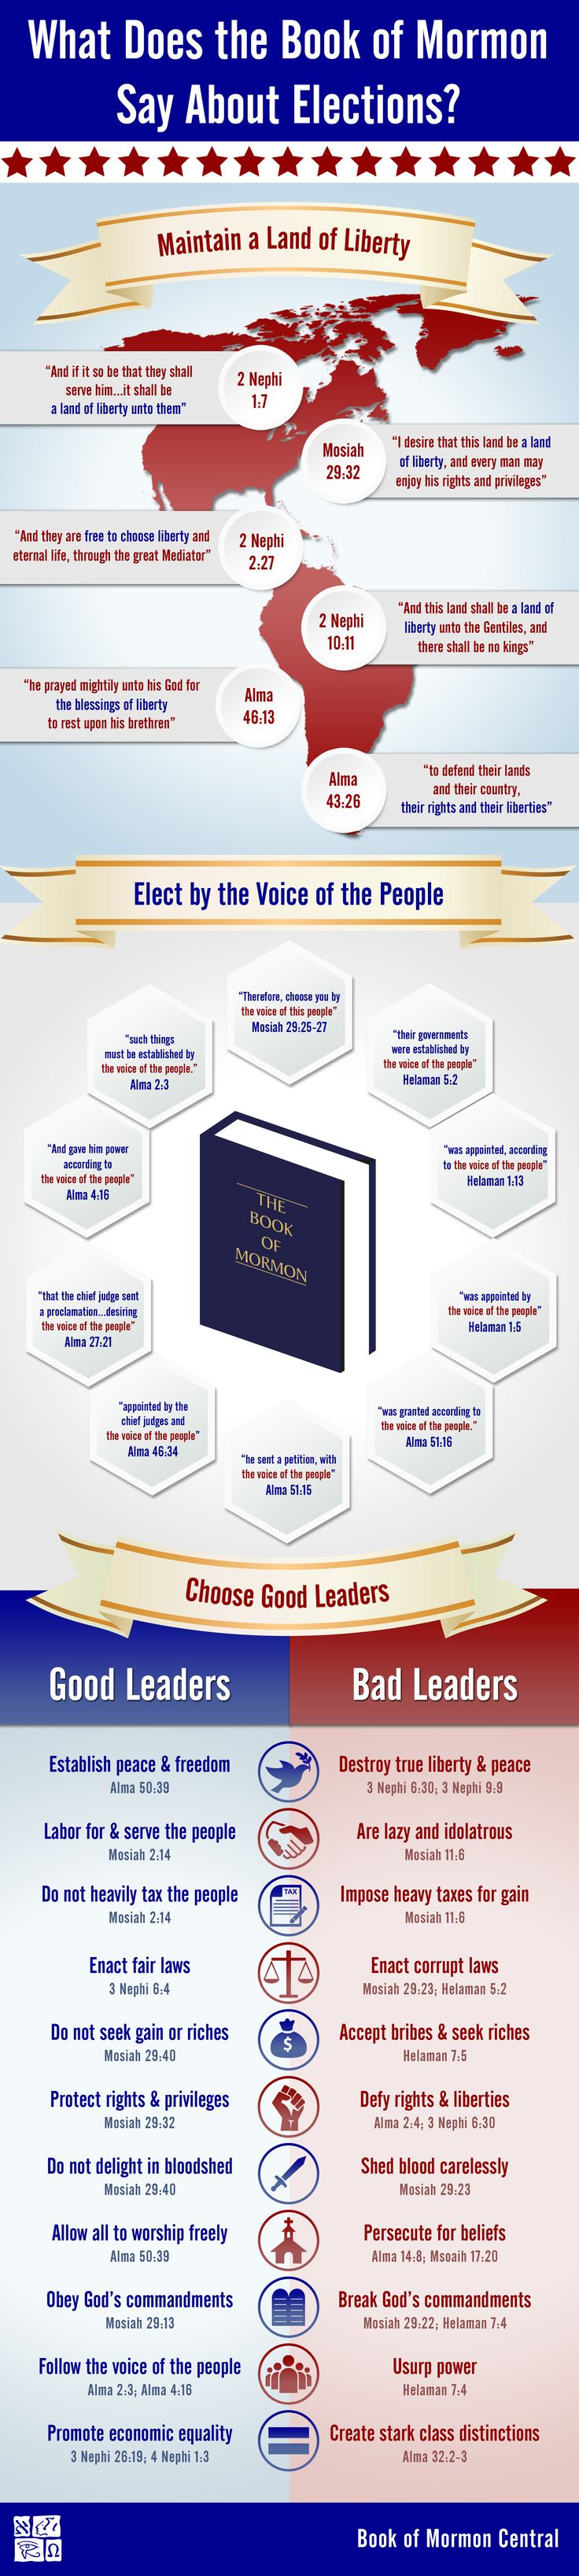 Infographic on what the Book of Mormon teaches on elections